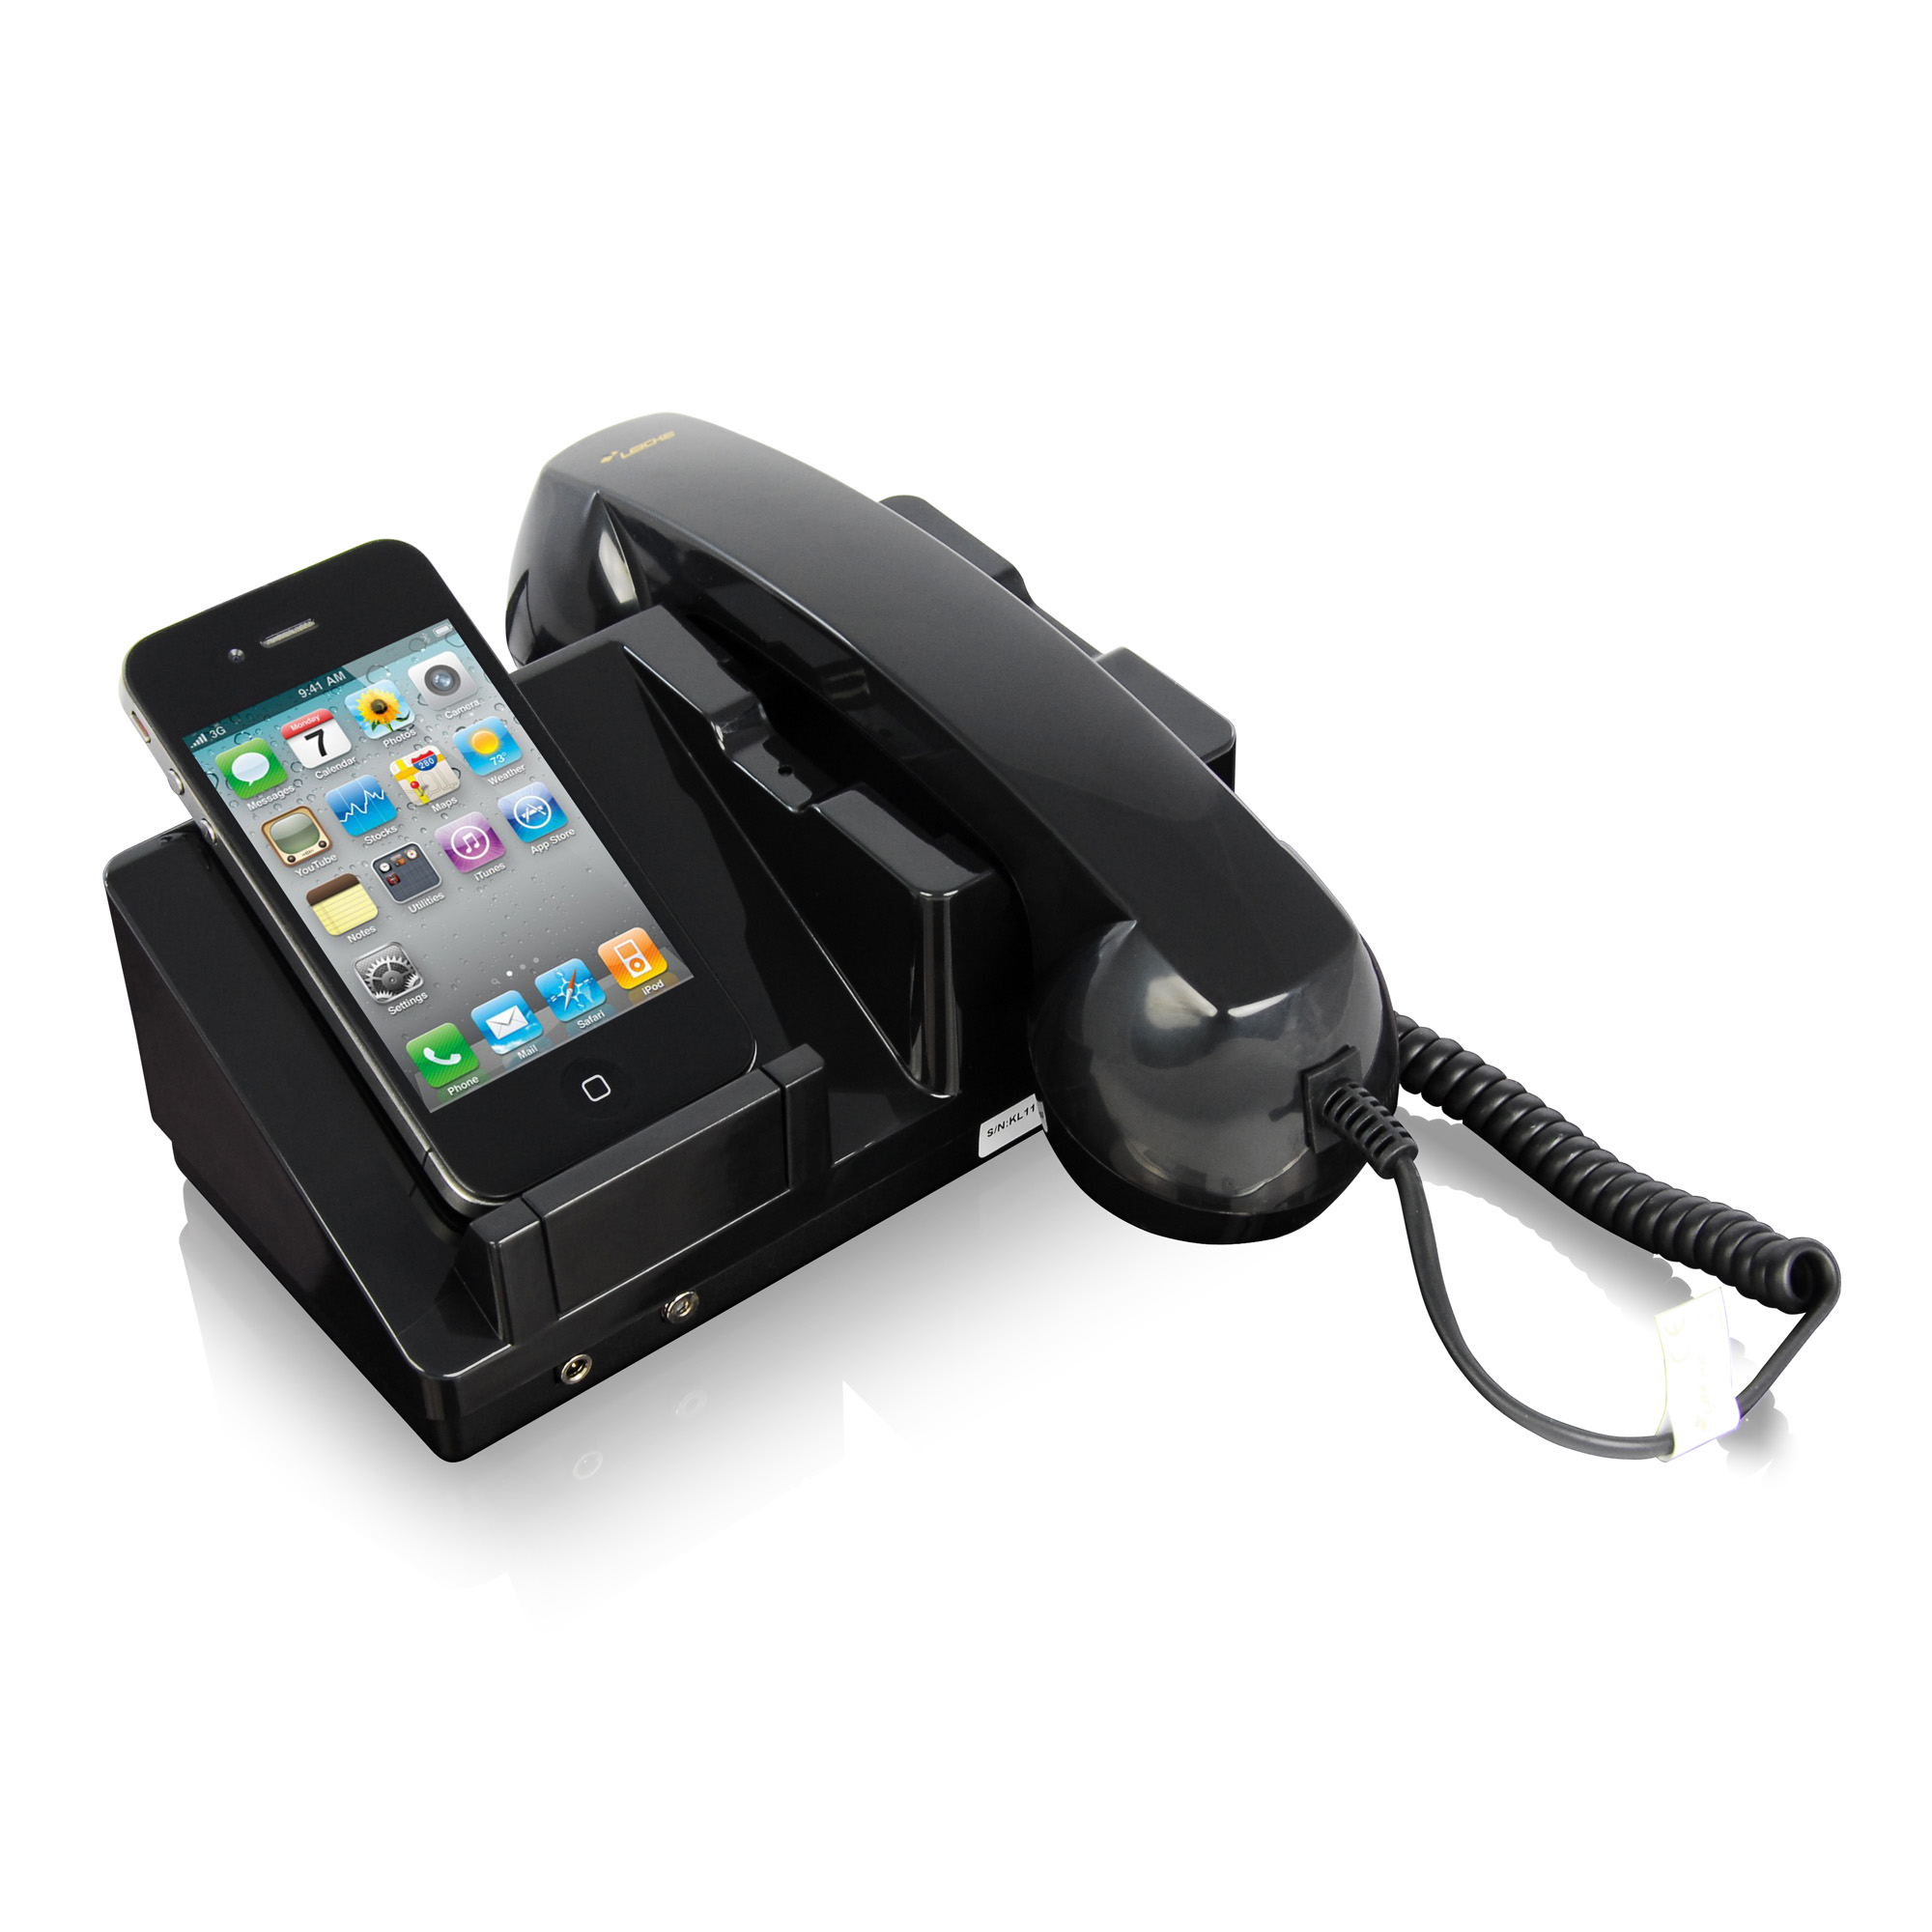 leicke leicke retro docking station for iphone 4 with. Black Bedroom Furniture Sets. Home Design Ideas